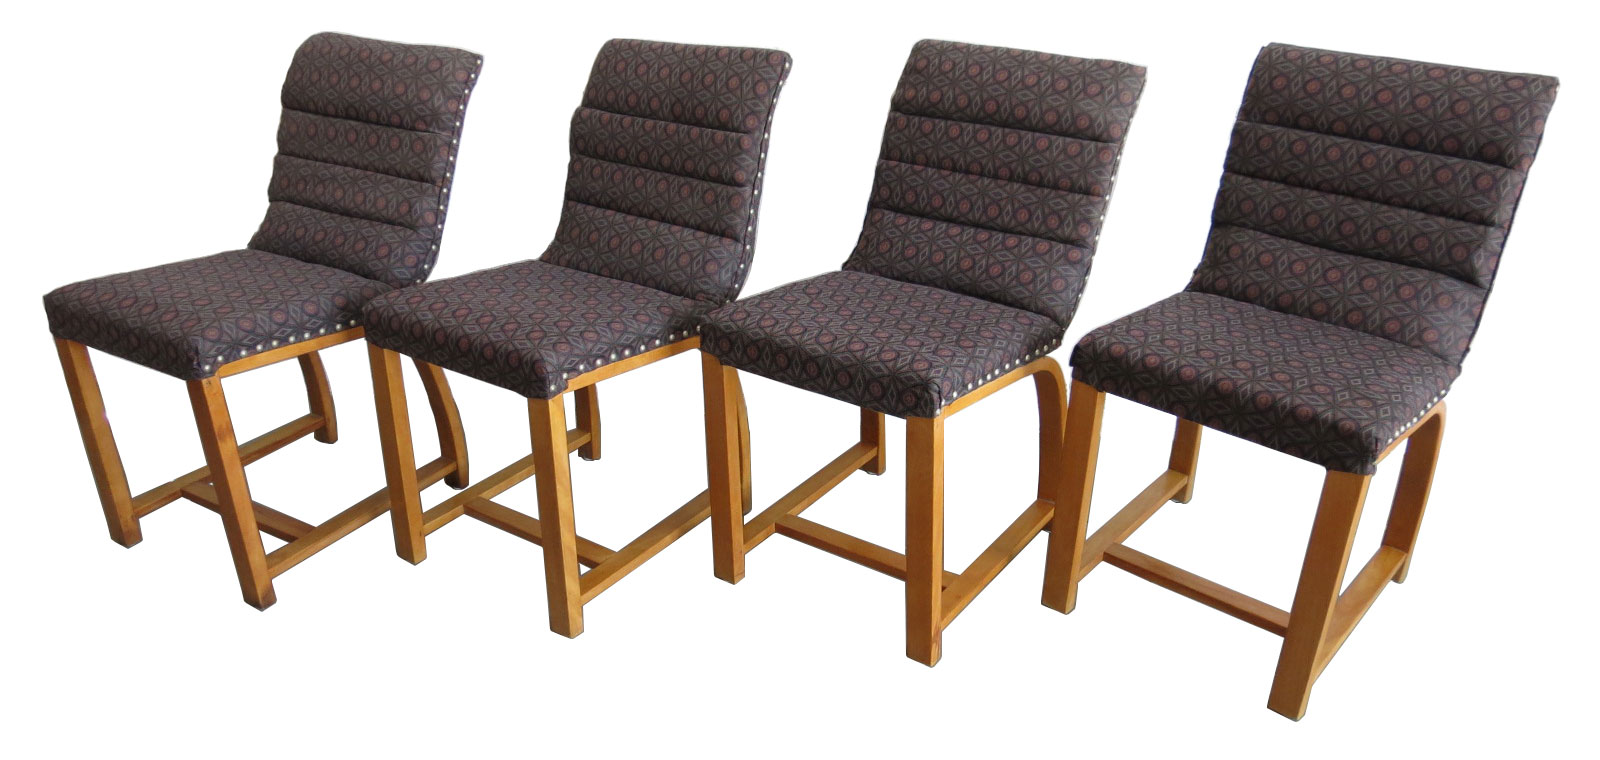 Exceptional Four American Art Deco Chairs By Gilbert Rohde